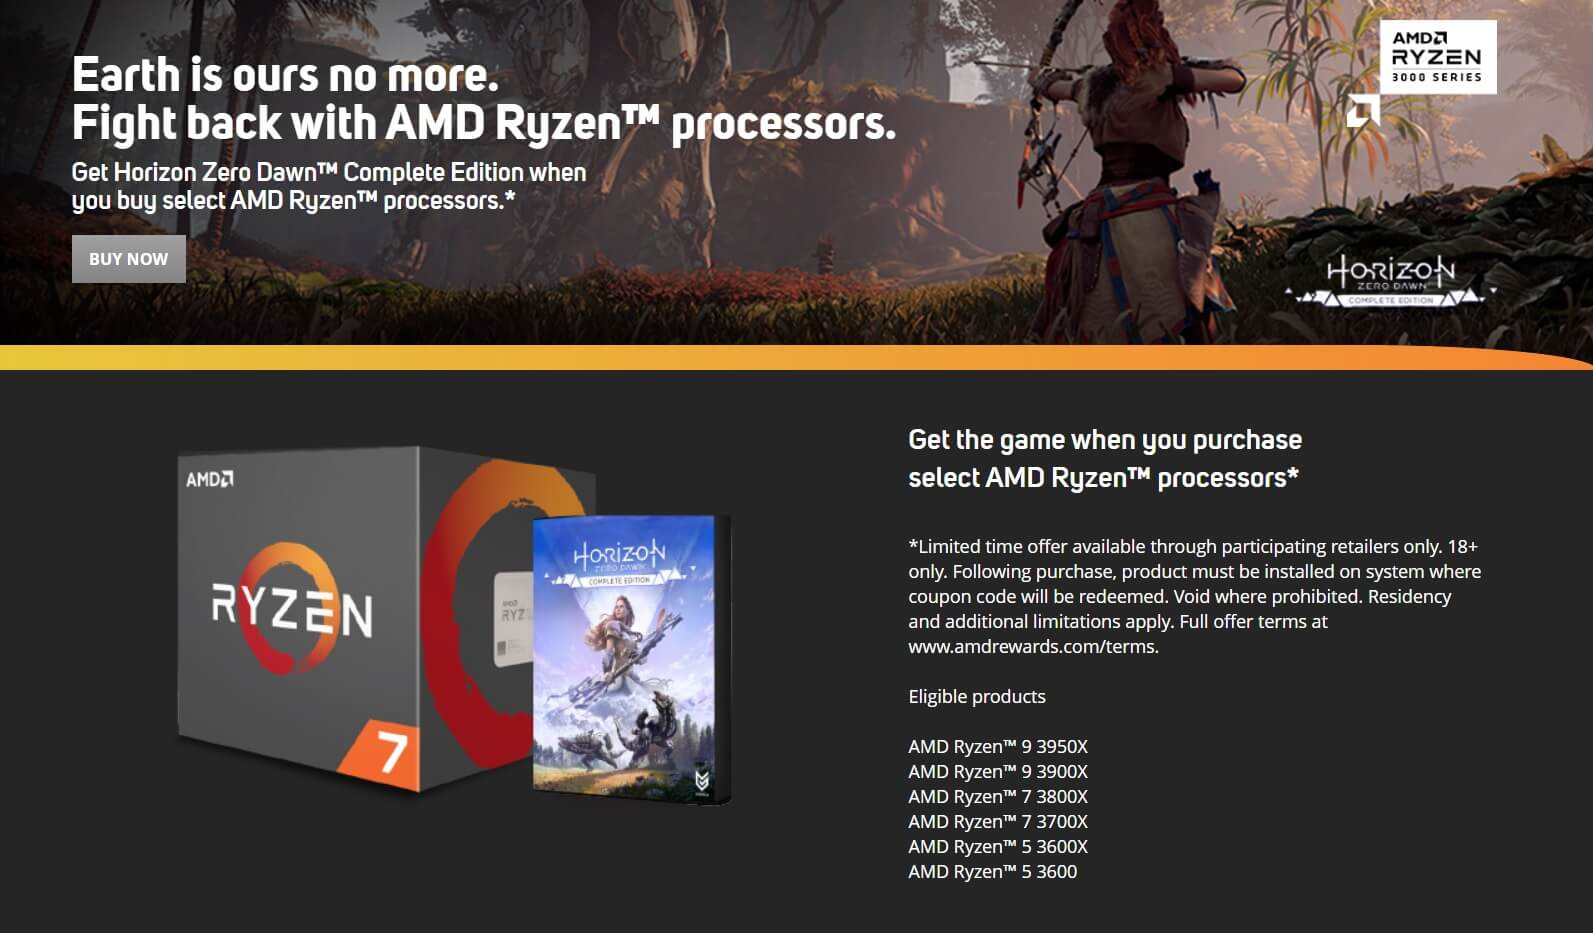 AMD Horizon Zero Dawn bundle